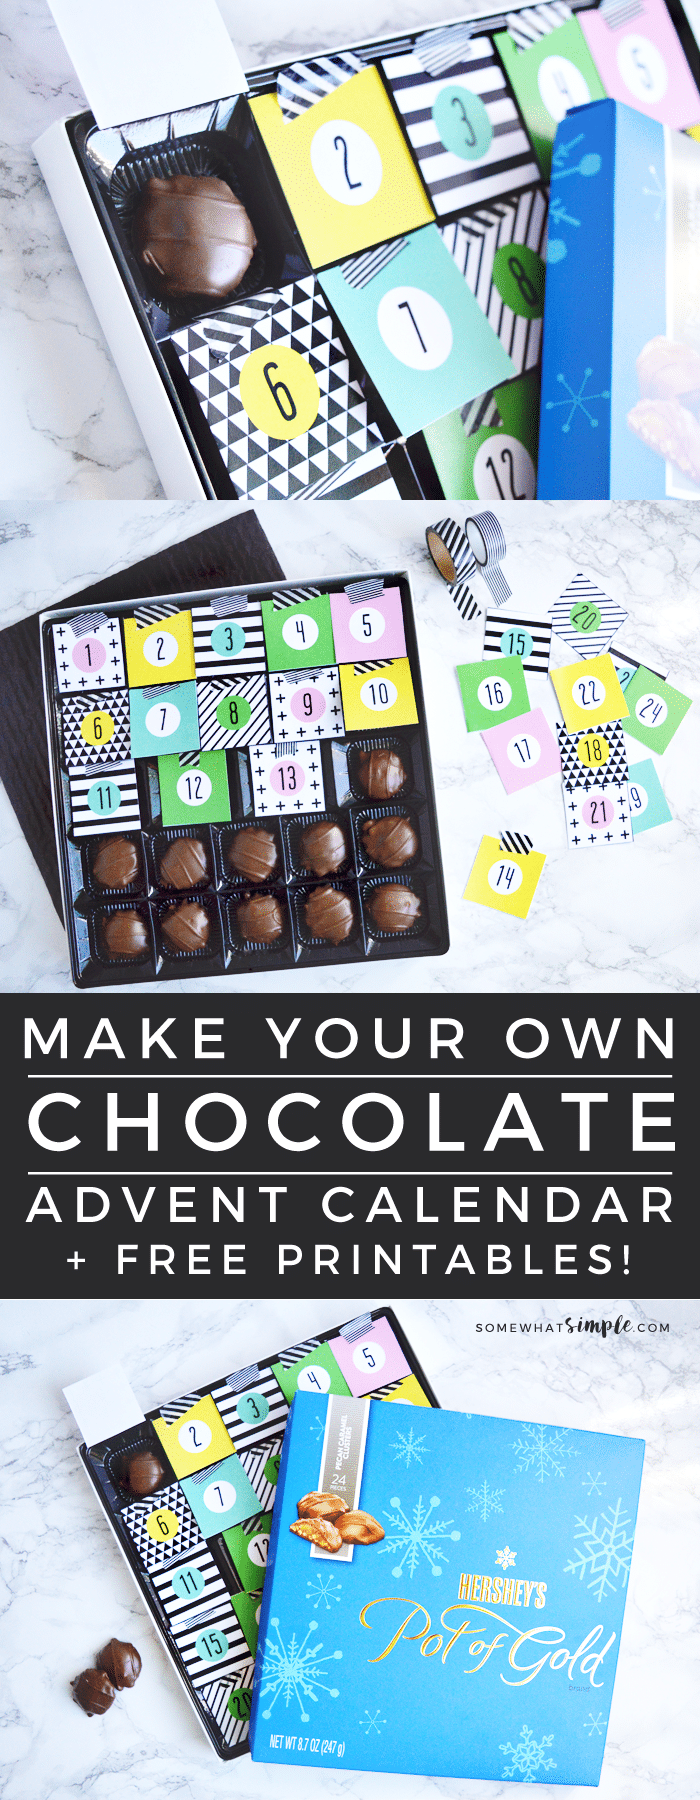 You won't believe how simple it is to turn an ordinary box of chocolates into a delicious countdown activity! Our Chocolate Christmas Advent Calendar is definitely a tradition you'll want to keep doing every year. #christmasadventcalendar #freeprintable #chocolatechirstmascalendar #christmascraft